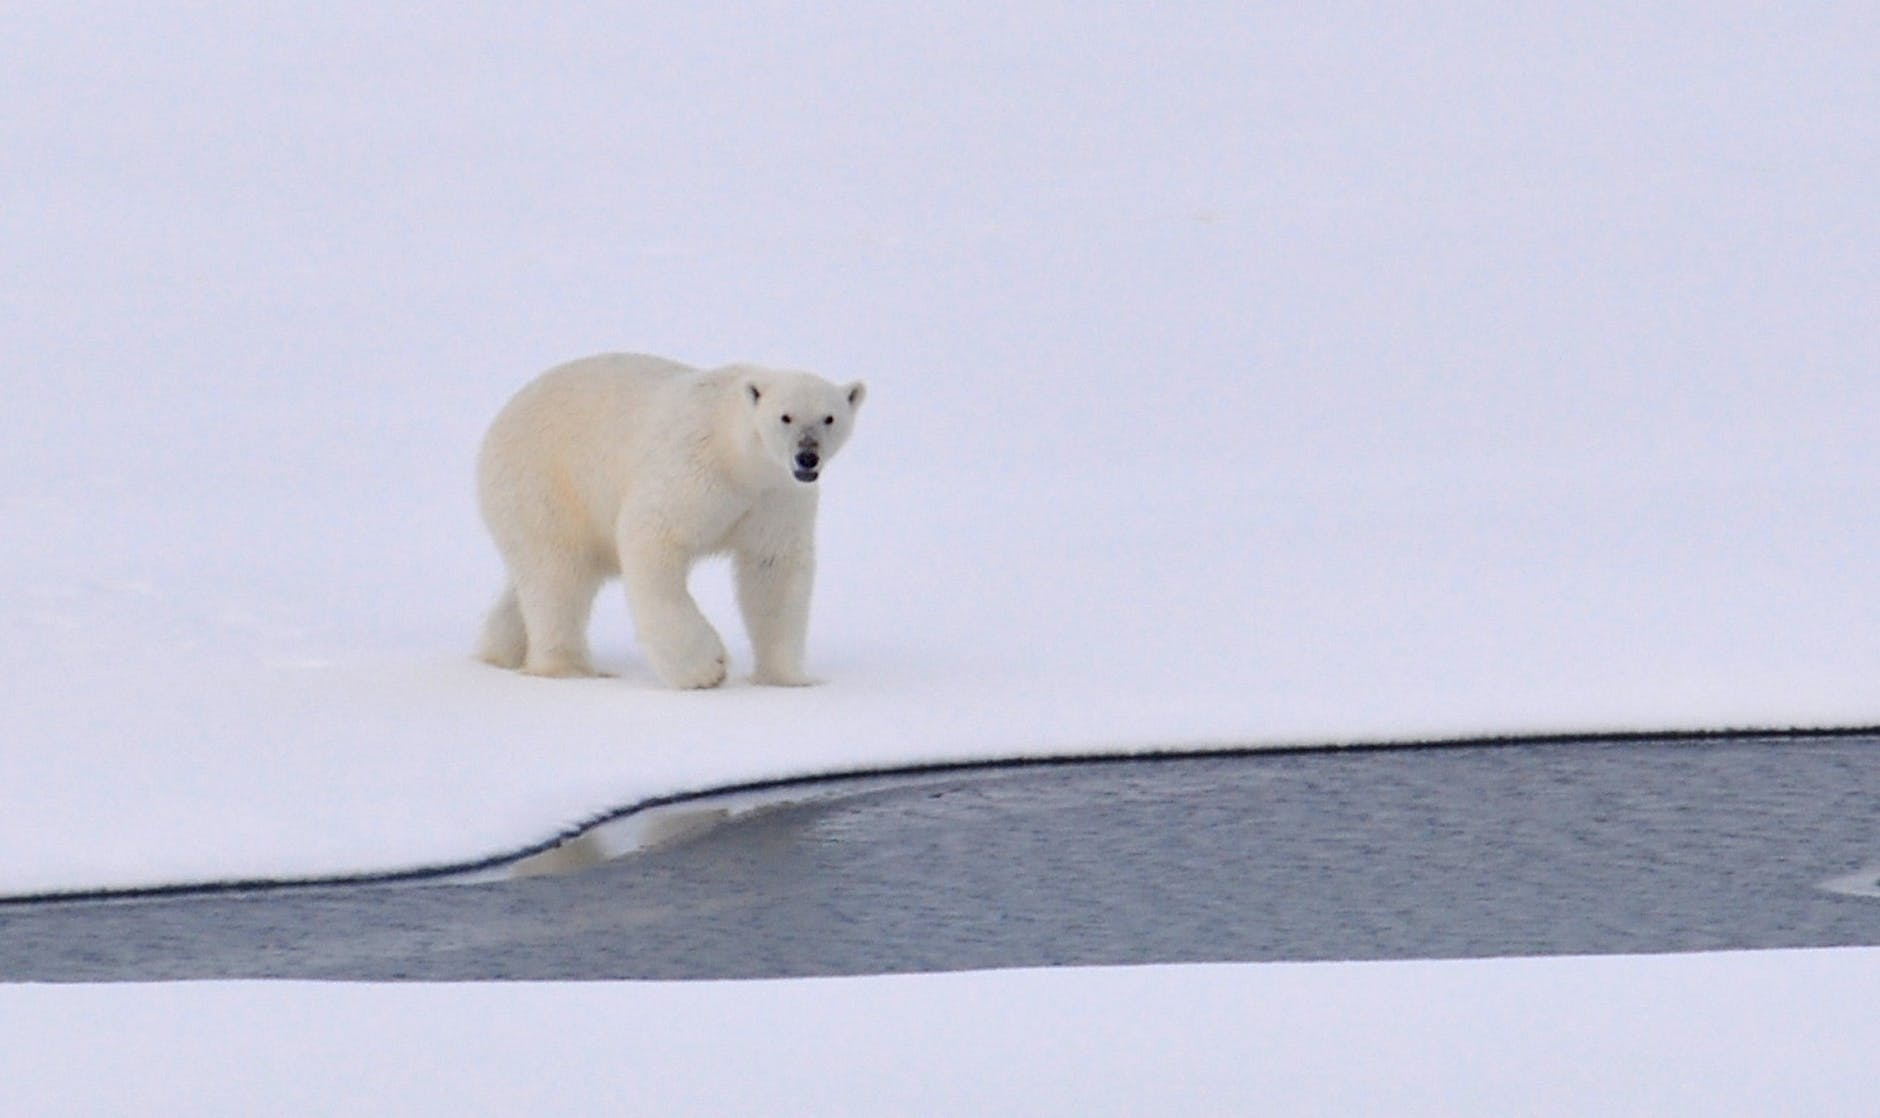 white polar bear on white snowy field near canal during daytime - for the best climate change charities  list